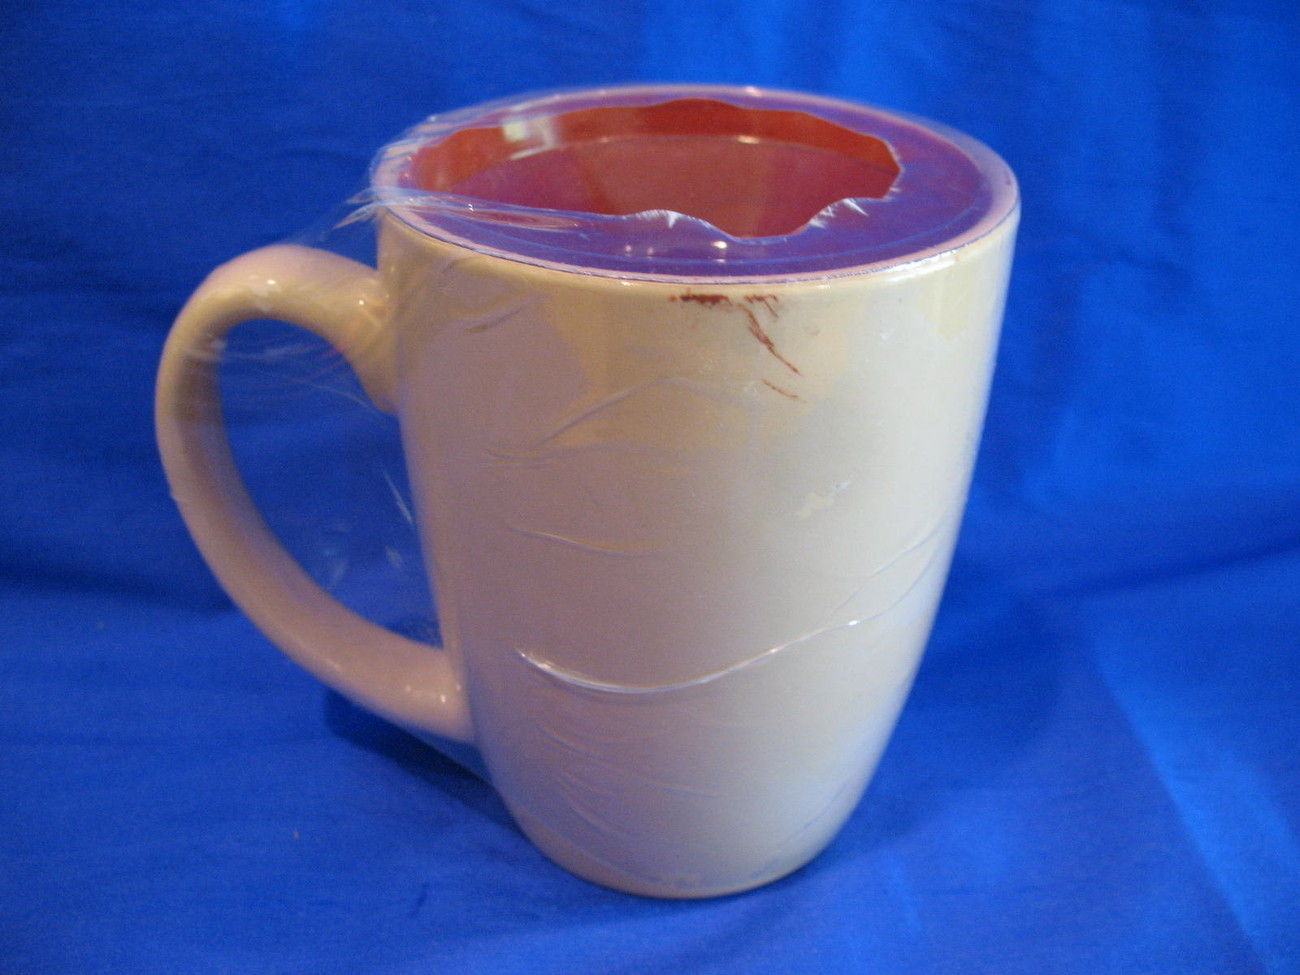 Original Coffee Mugs Baileys Original Irish Cream Coffee Mug Cup New Souvenir